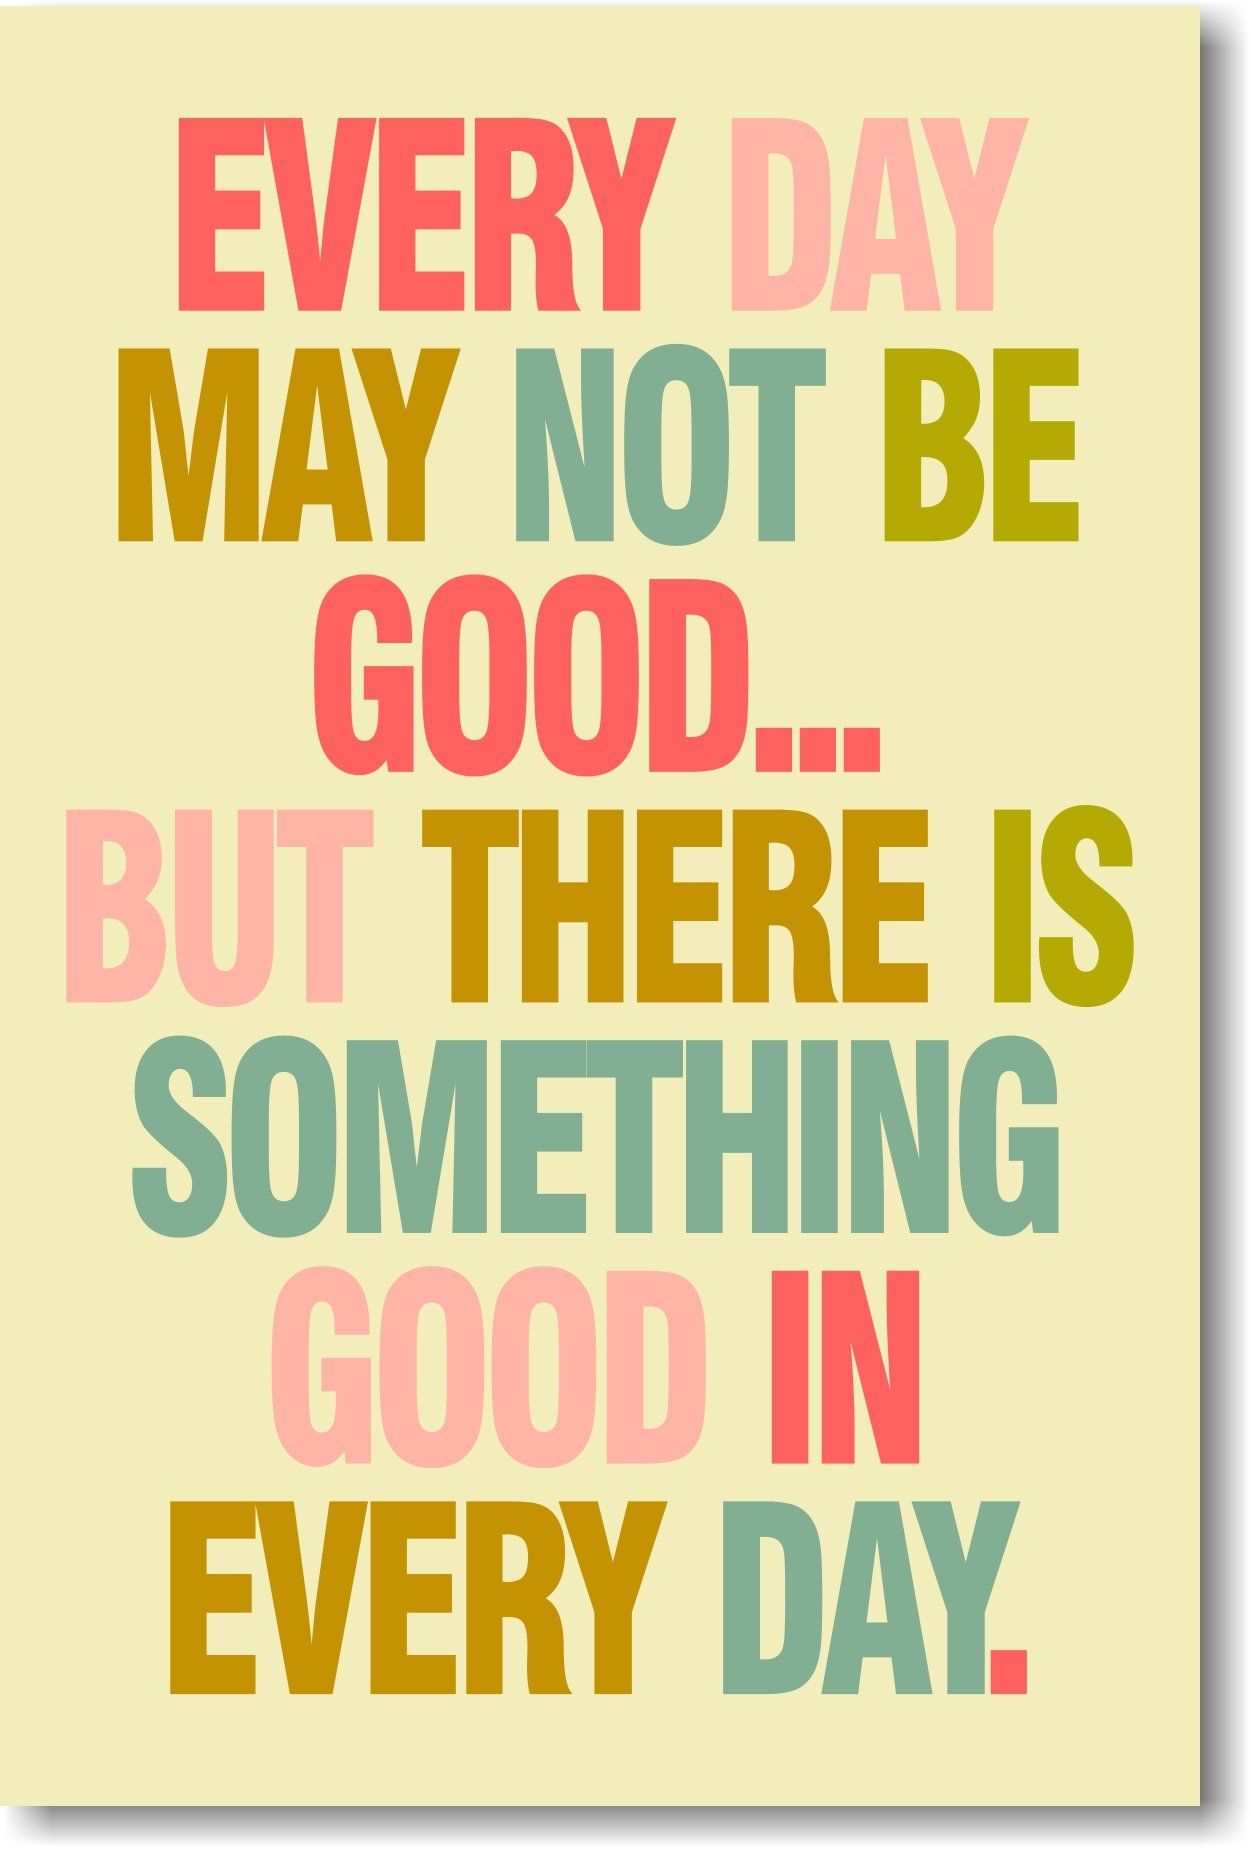 Something Good In Every Day Inspirational Quotes For Kids Classroom Motivational Posters Classroom Quotes